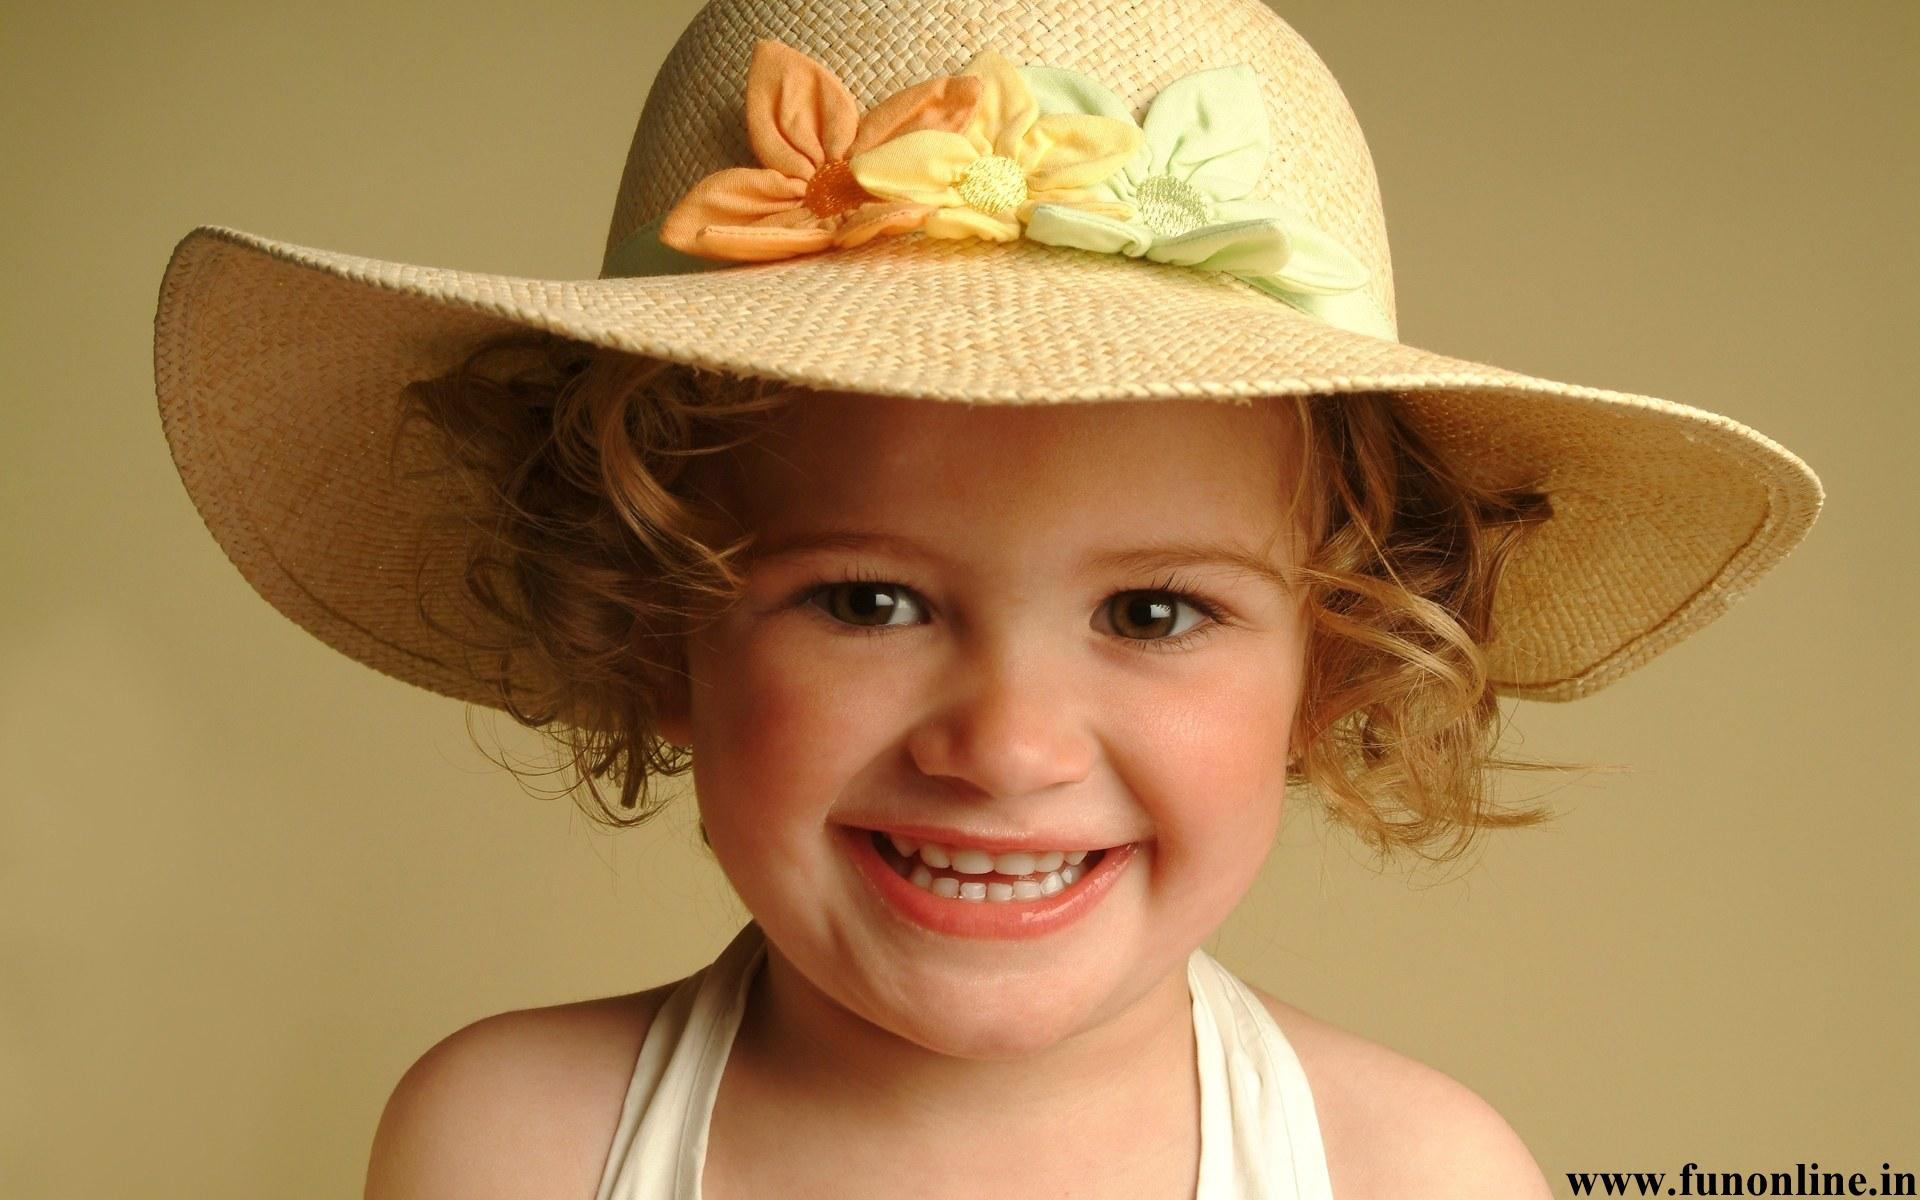 Collection Of Baby Girl Wallpapers Cute Girl Baby Wearing Lovely Hat Wallpaper